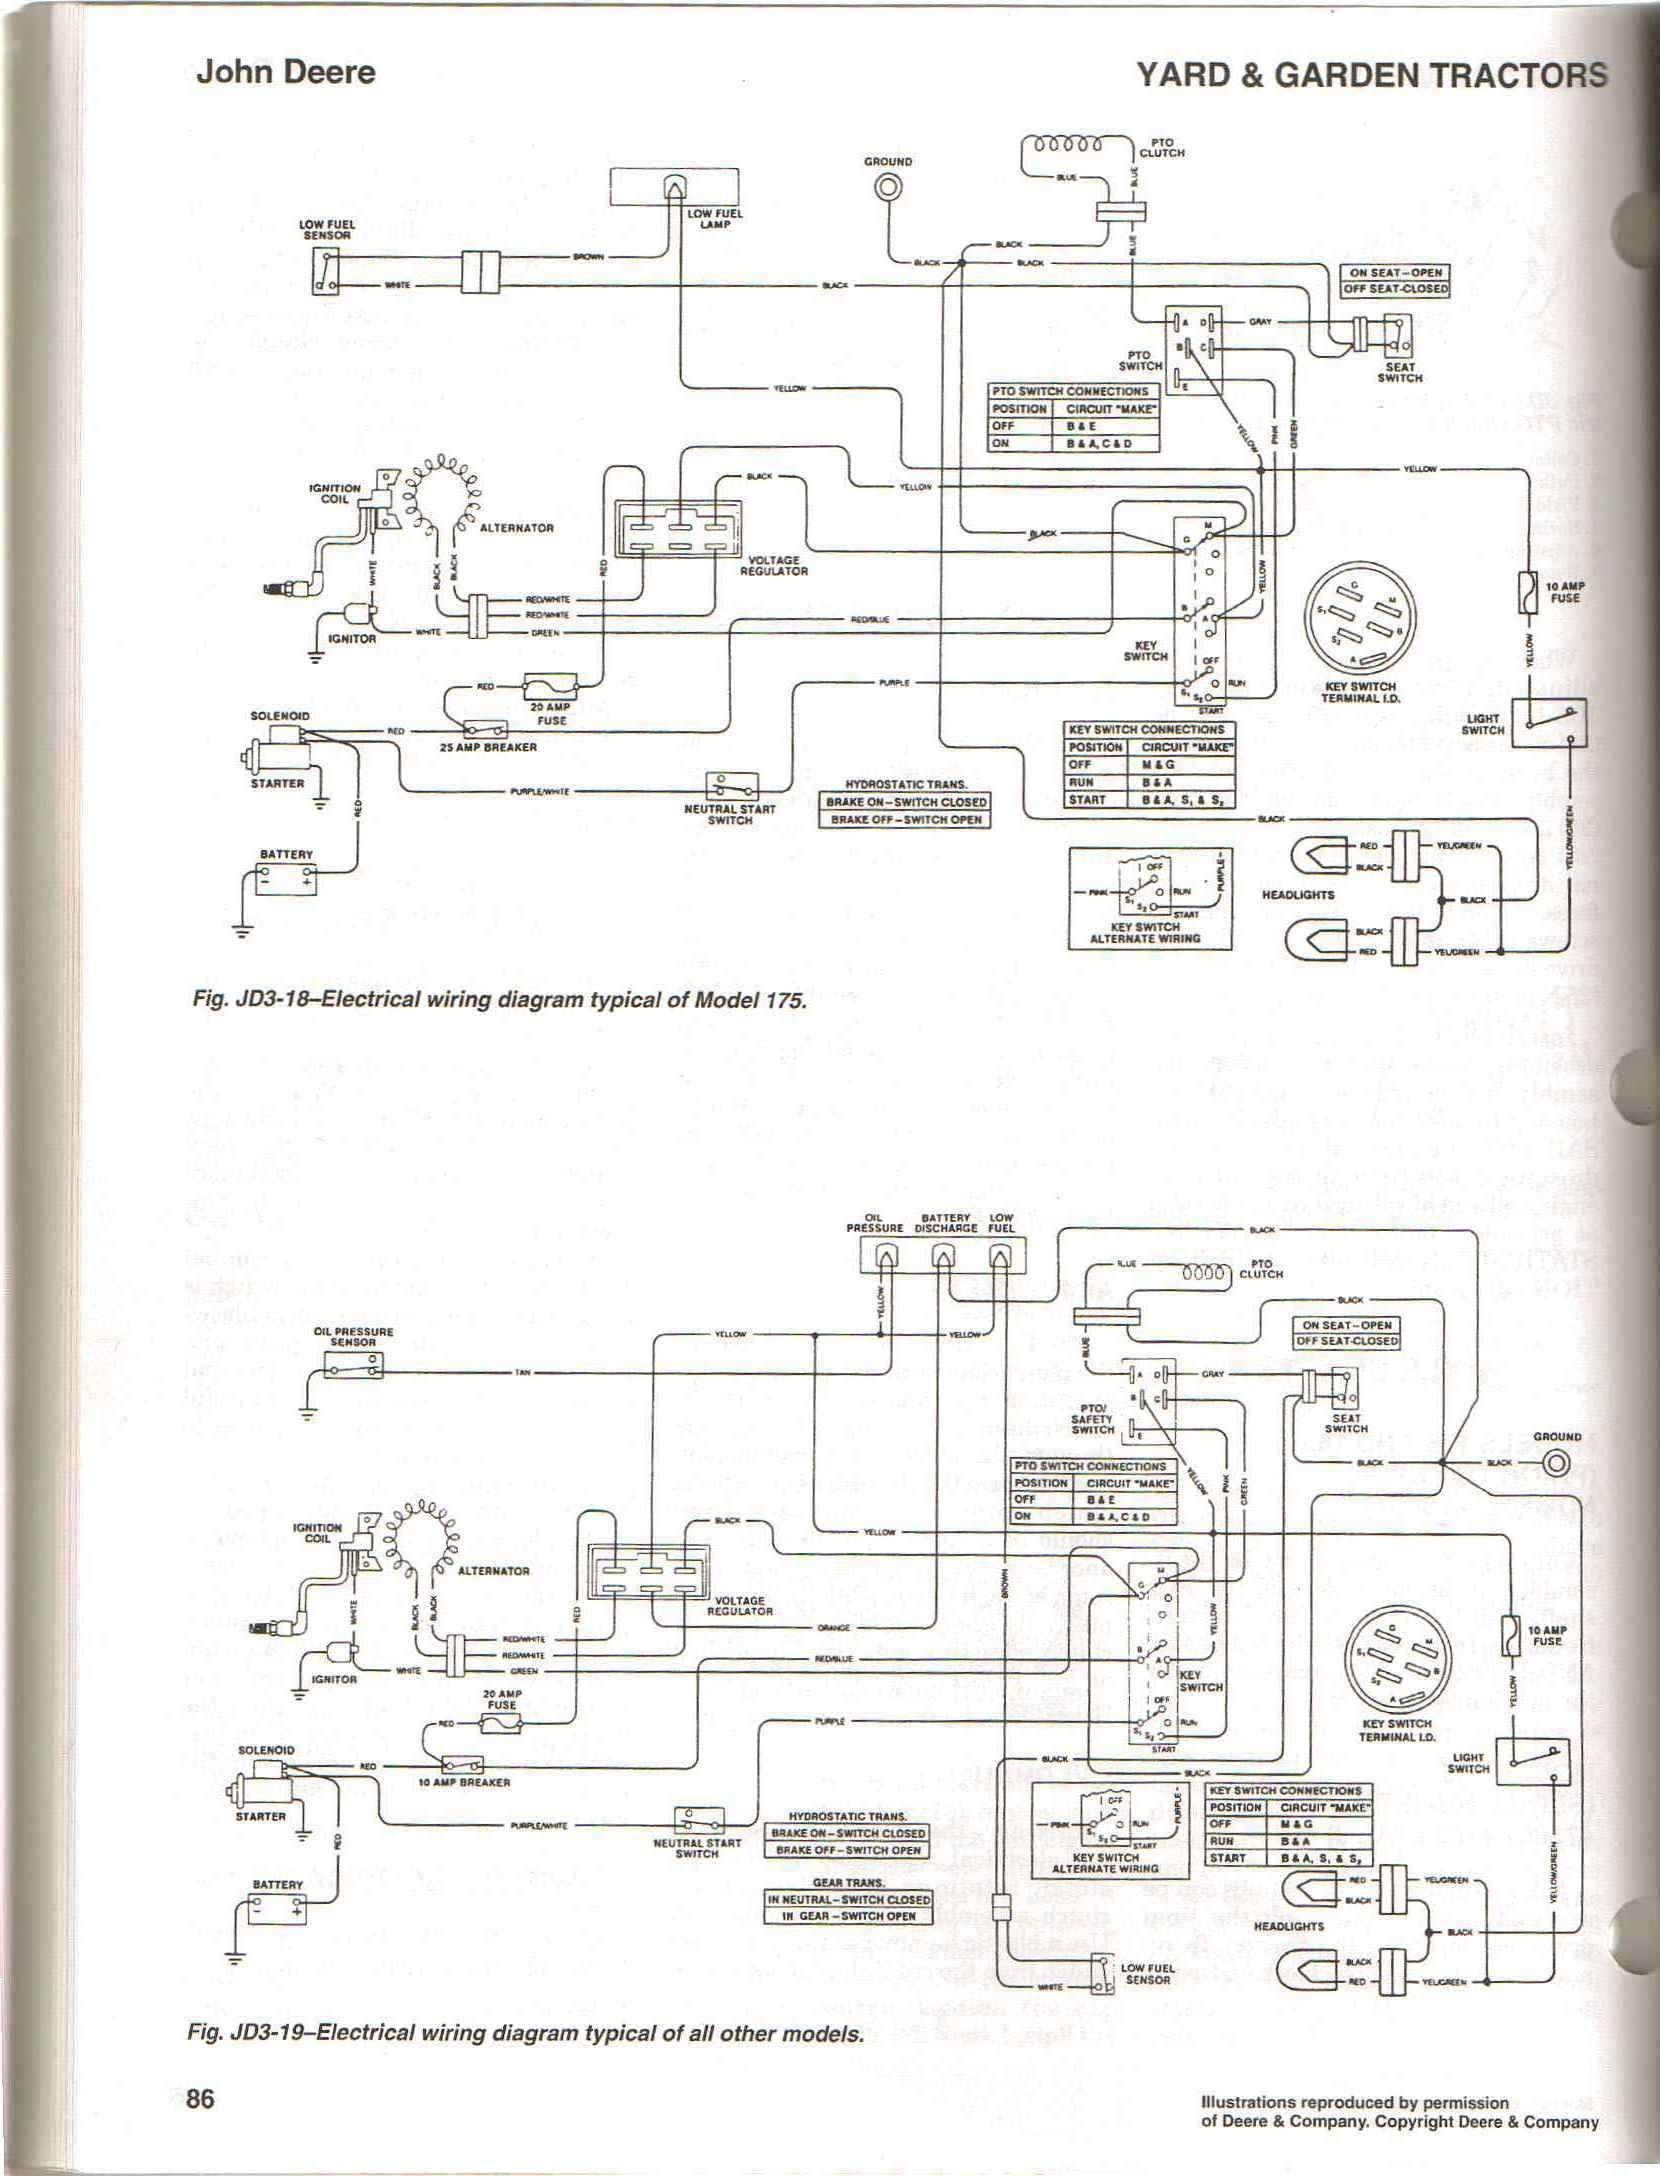 Diagram John Deere 4x2 Gator Wiring Diagram